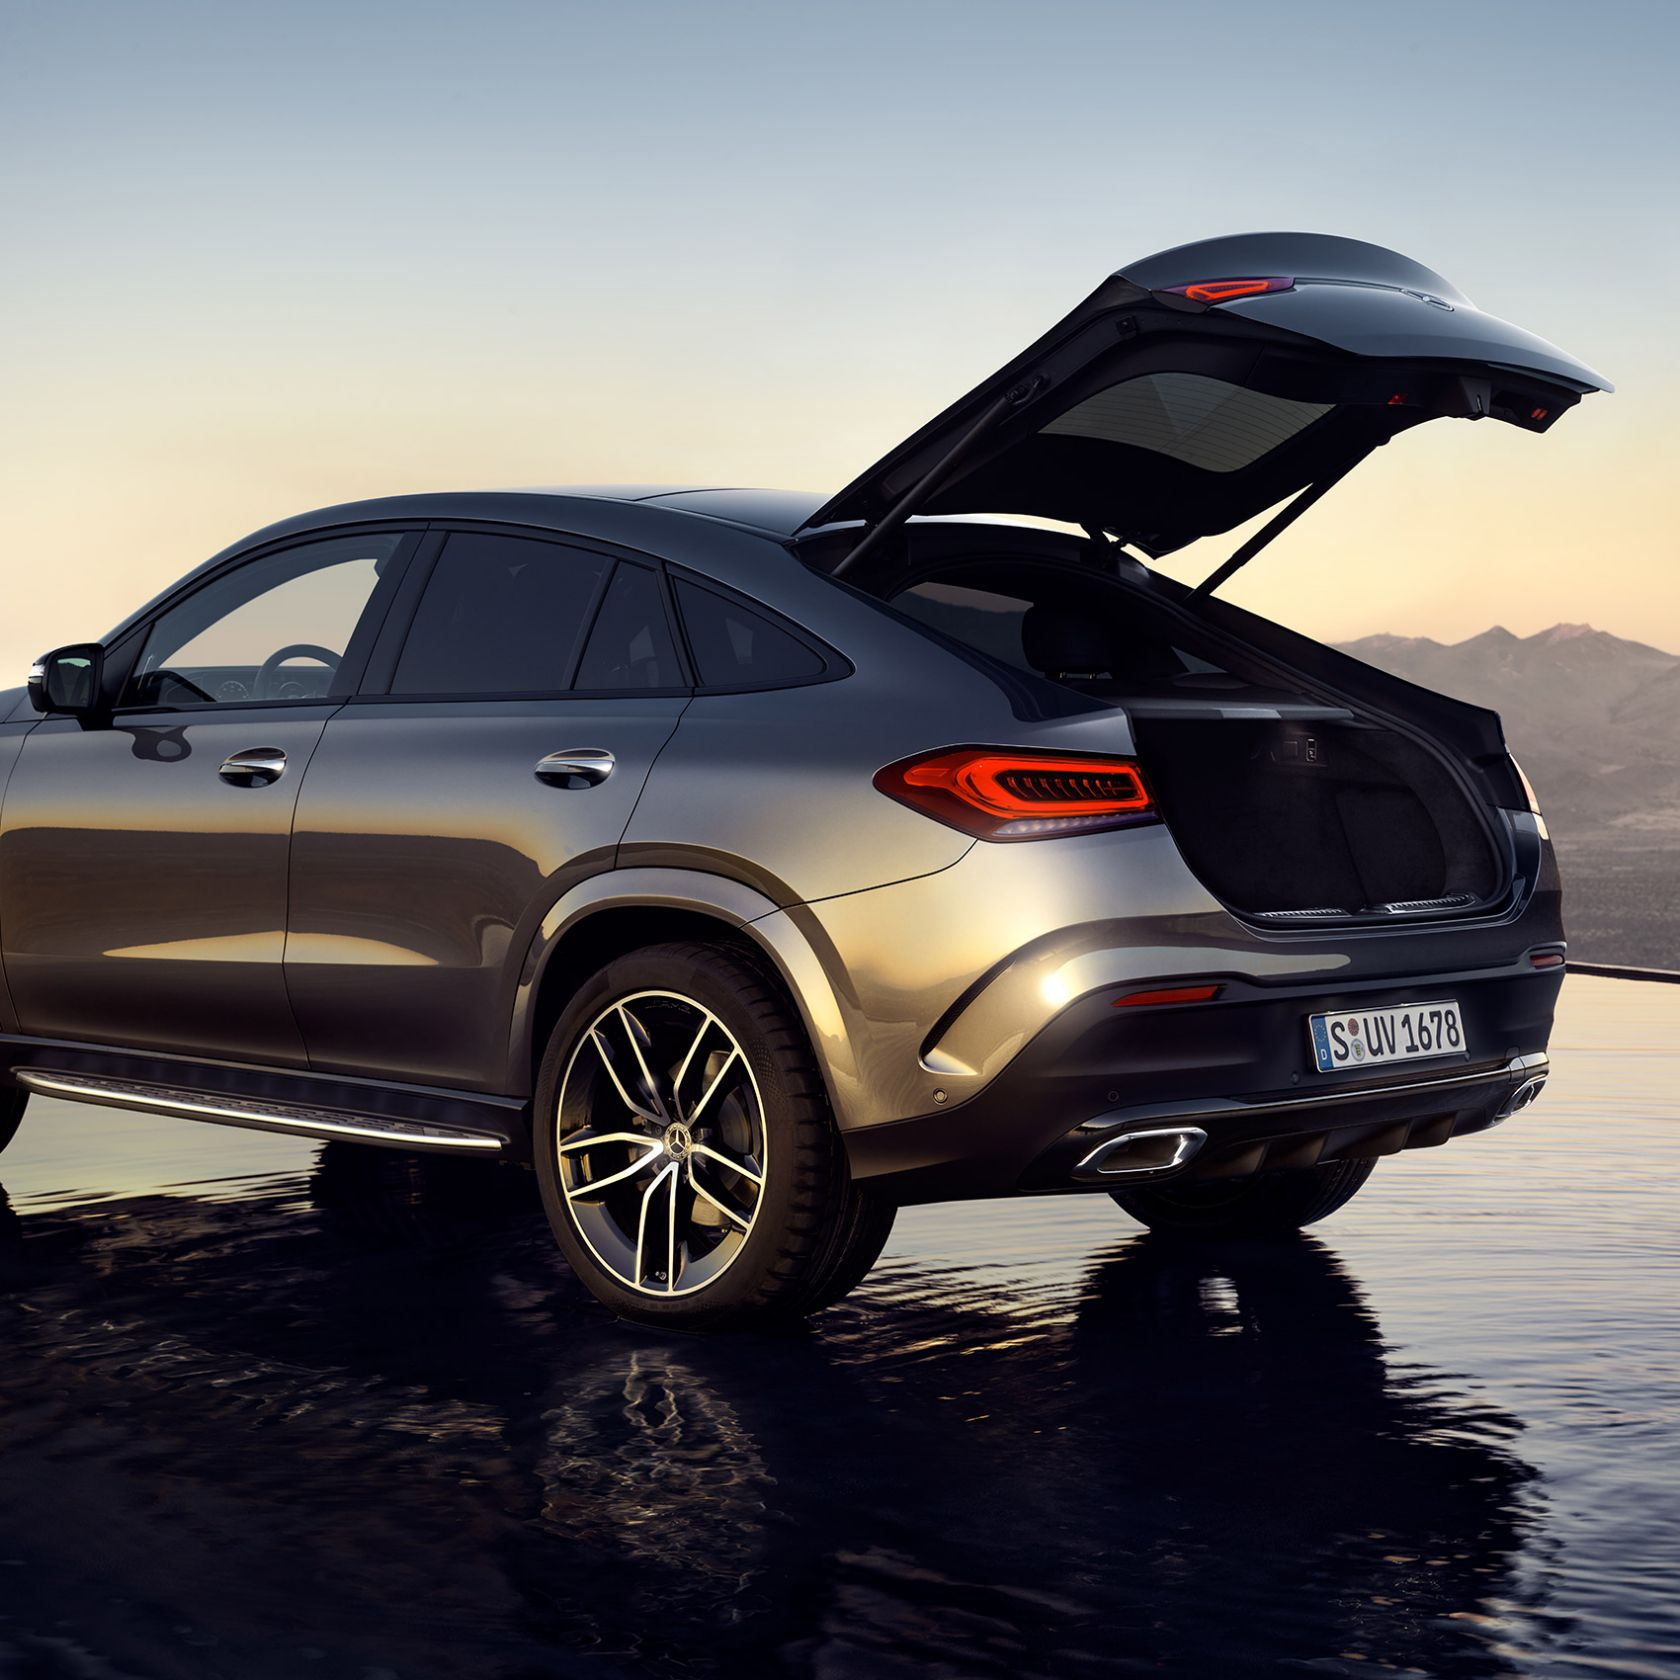 The New Mercedes-Benz GLE Coupé (2020). Outside: SUV